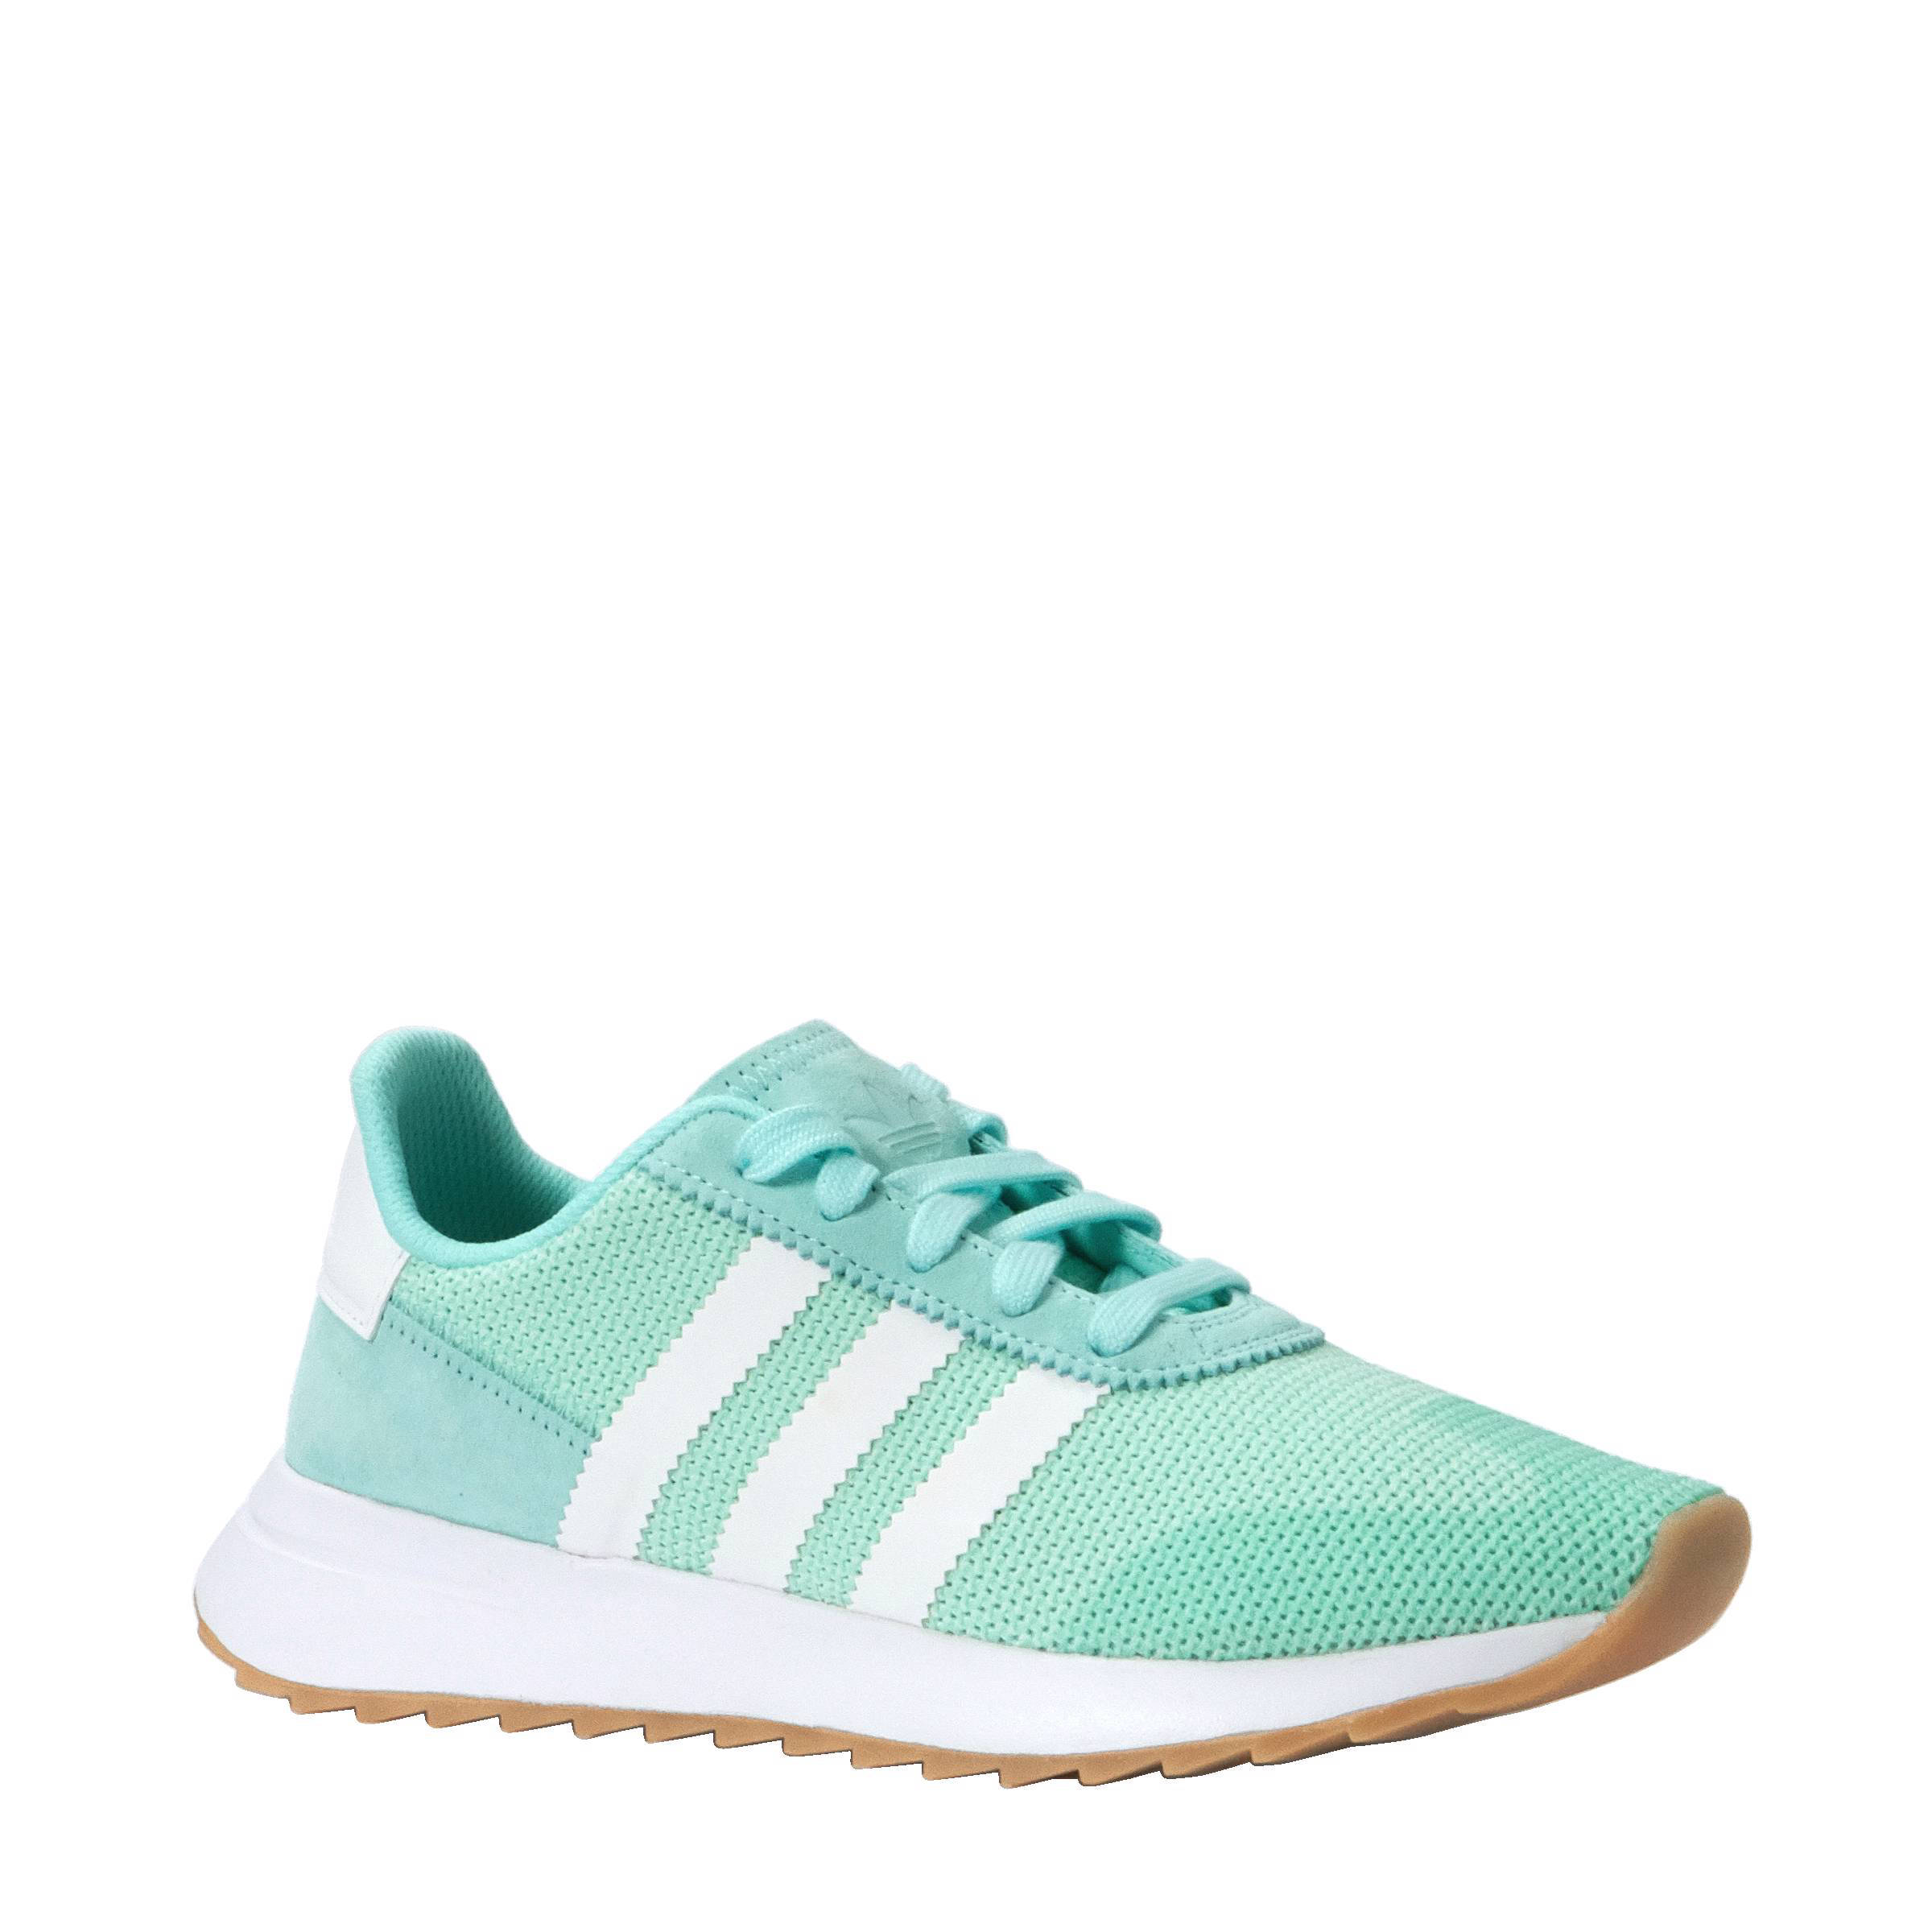 948c2680443 W Met Flb Runner Adidas Originals Sneakers LeerWehkamp dQrCxBoeW